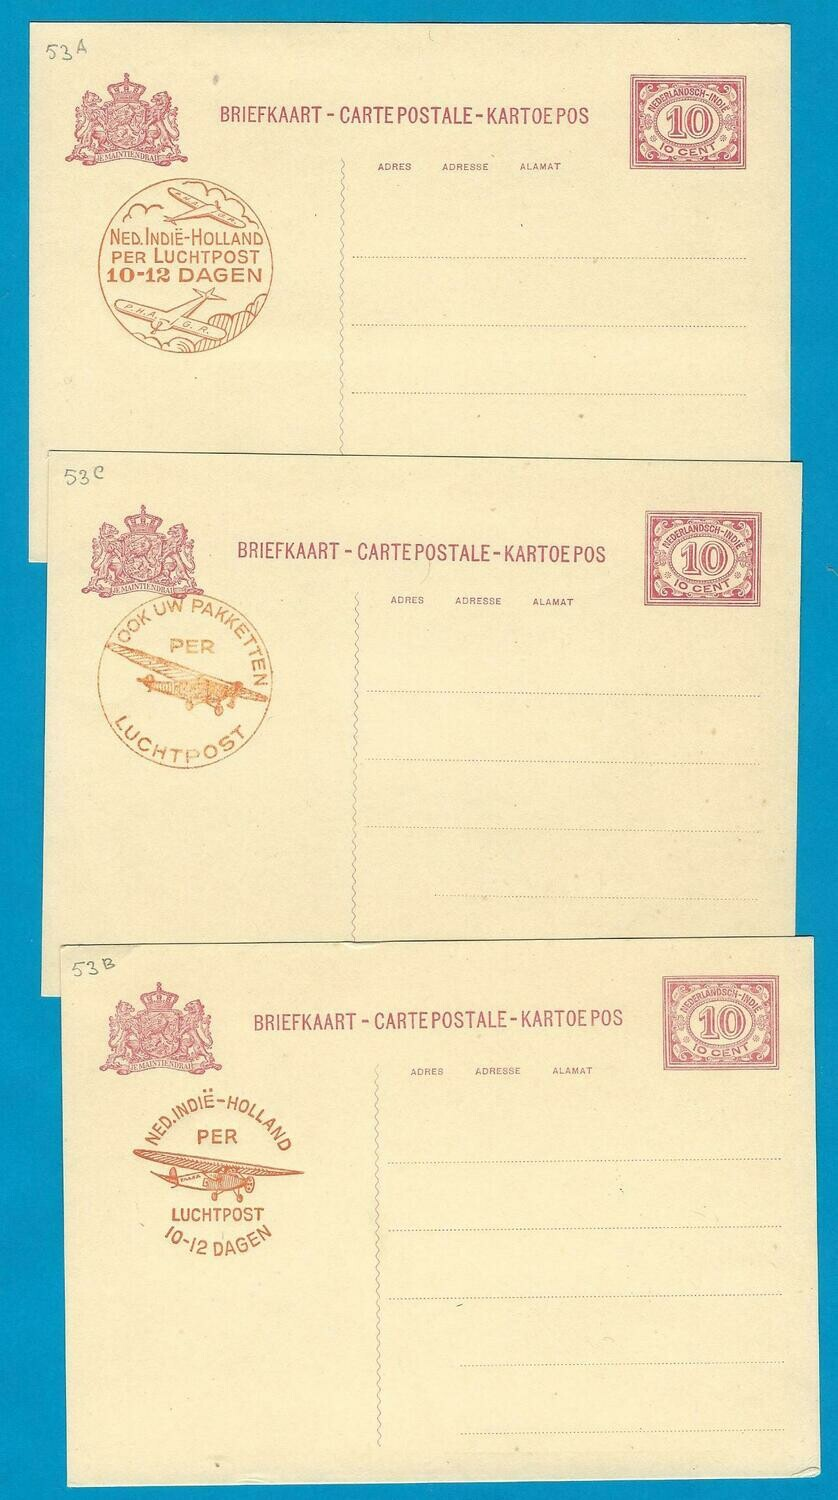 NETHERLANDS INDIES 3 postal cards 1930 airmail cachet *